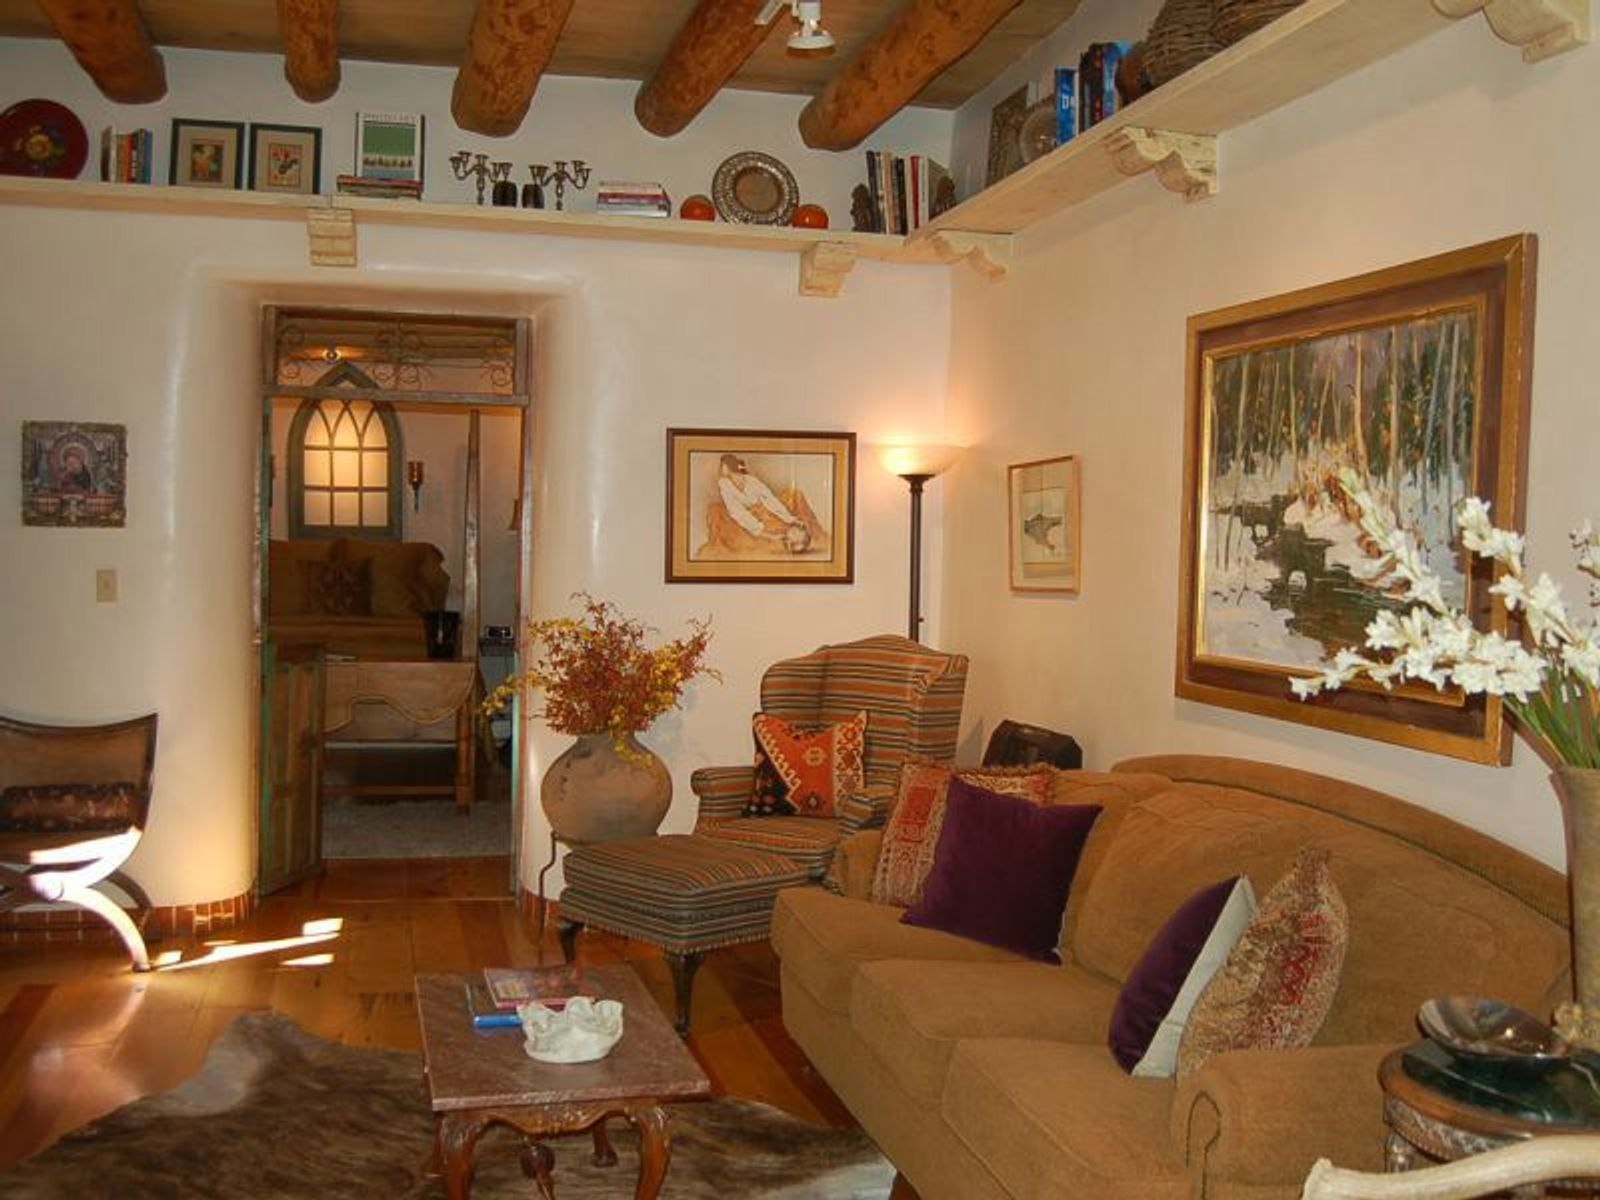 447 Cerrillos Road, Santa Fe NM Condominium - Santa Fe Real Estate